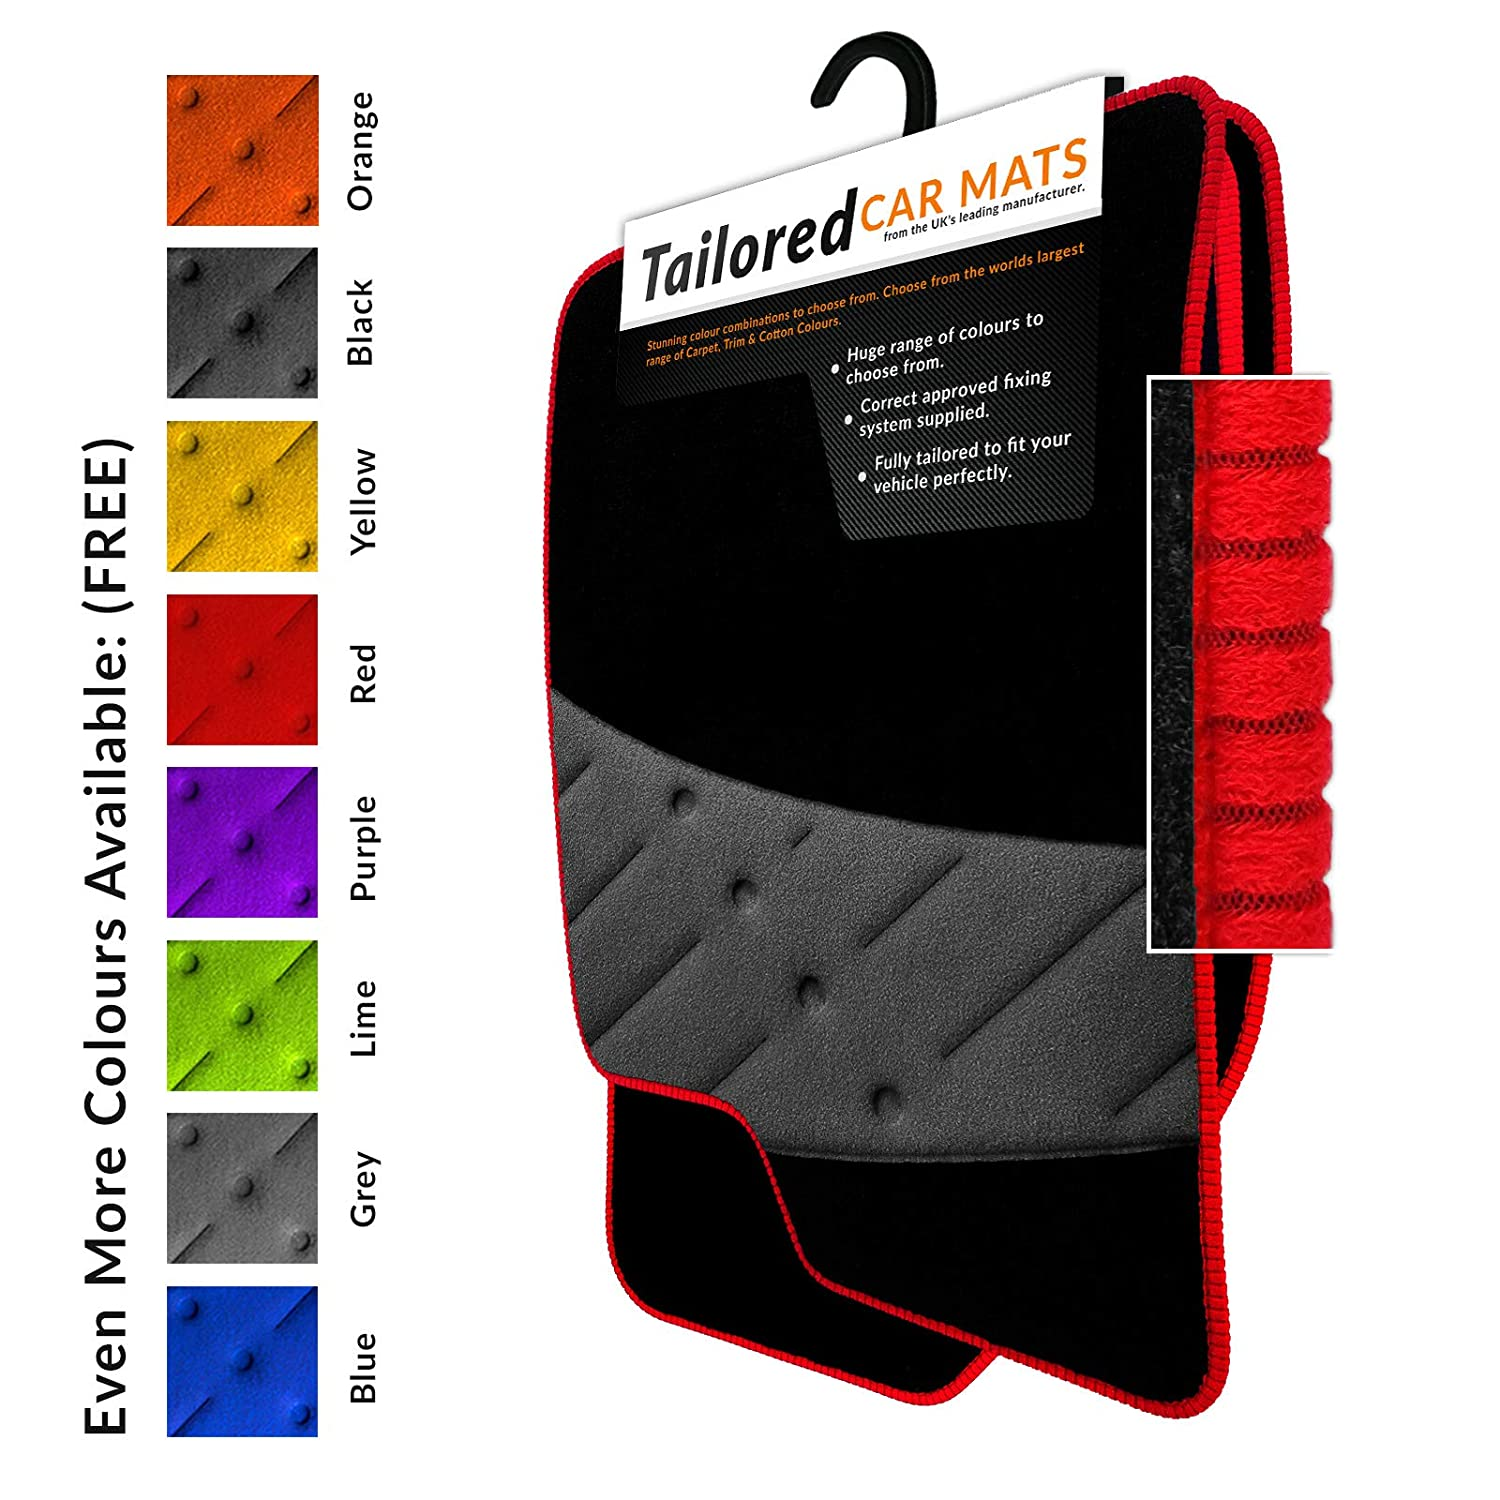 Fully Tailored Car Mats - Weld Wide Heel Pad - Black Carpet - Red Ribbed Trim - Black Heel Pad - Car Mats Unique Car Mats